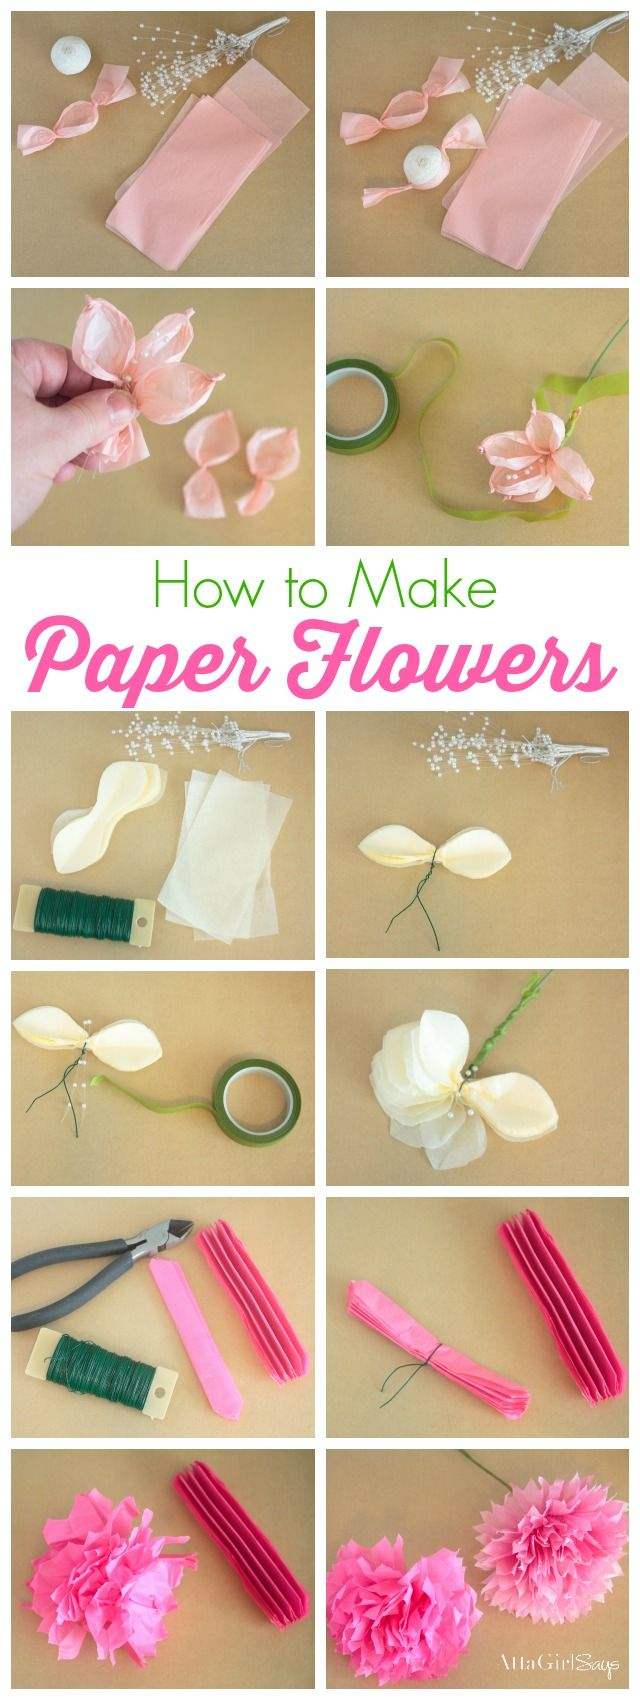 Flower · Learn How To Make Tissue Paper Flowers With This Easy Stepbystep  Tutorial